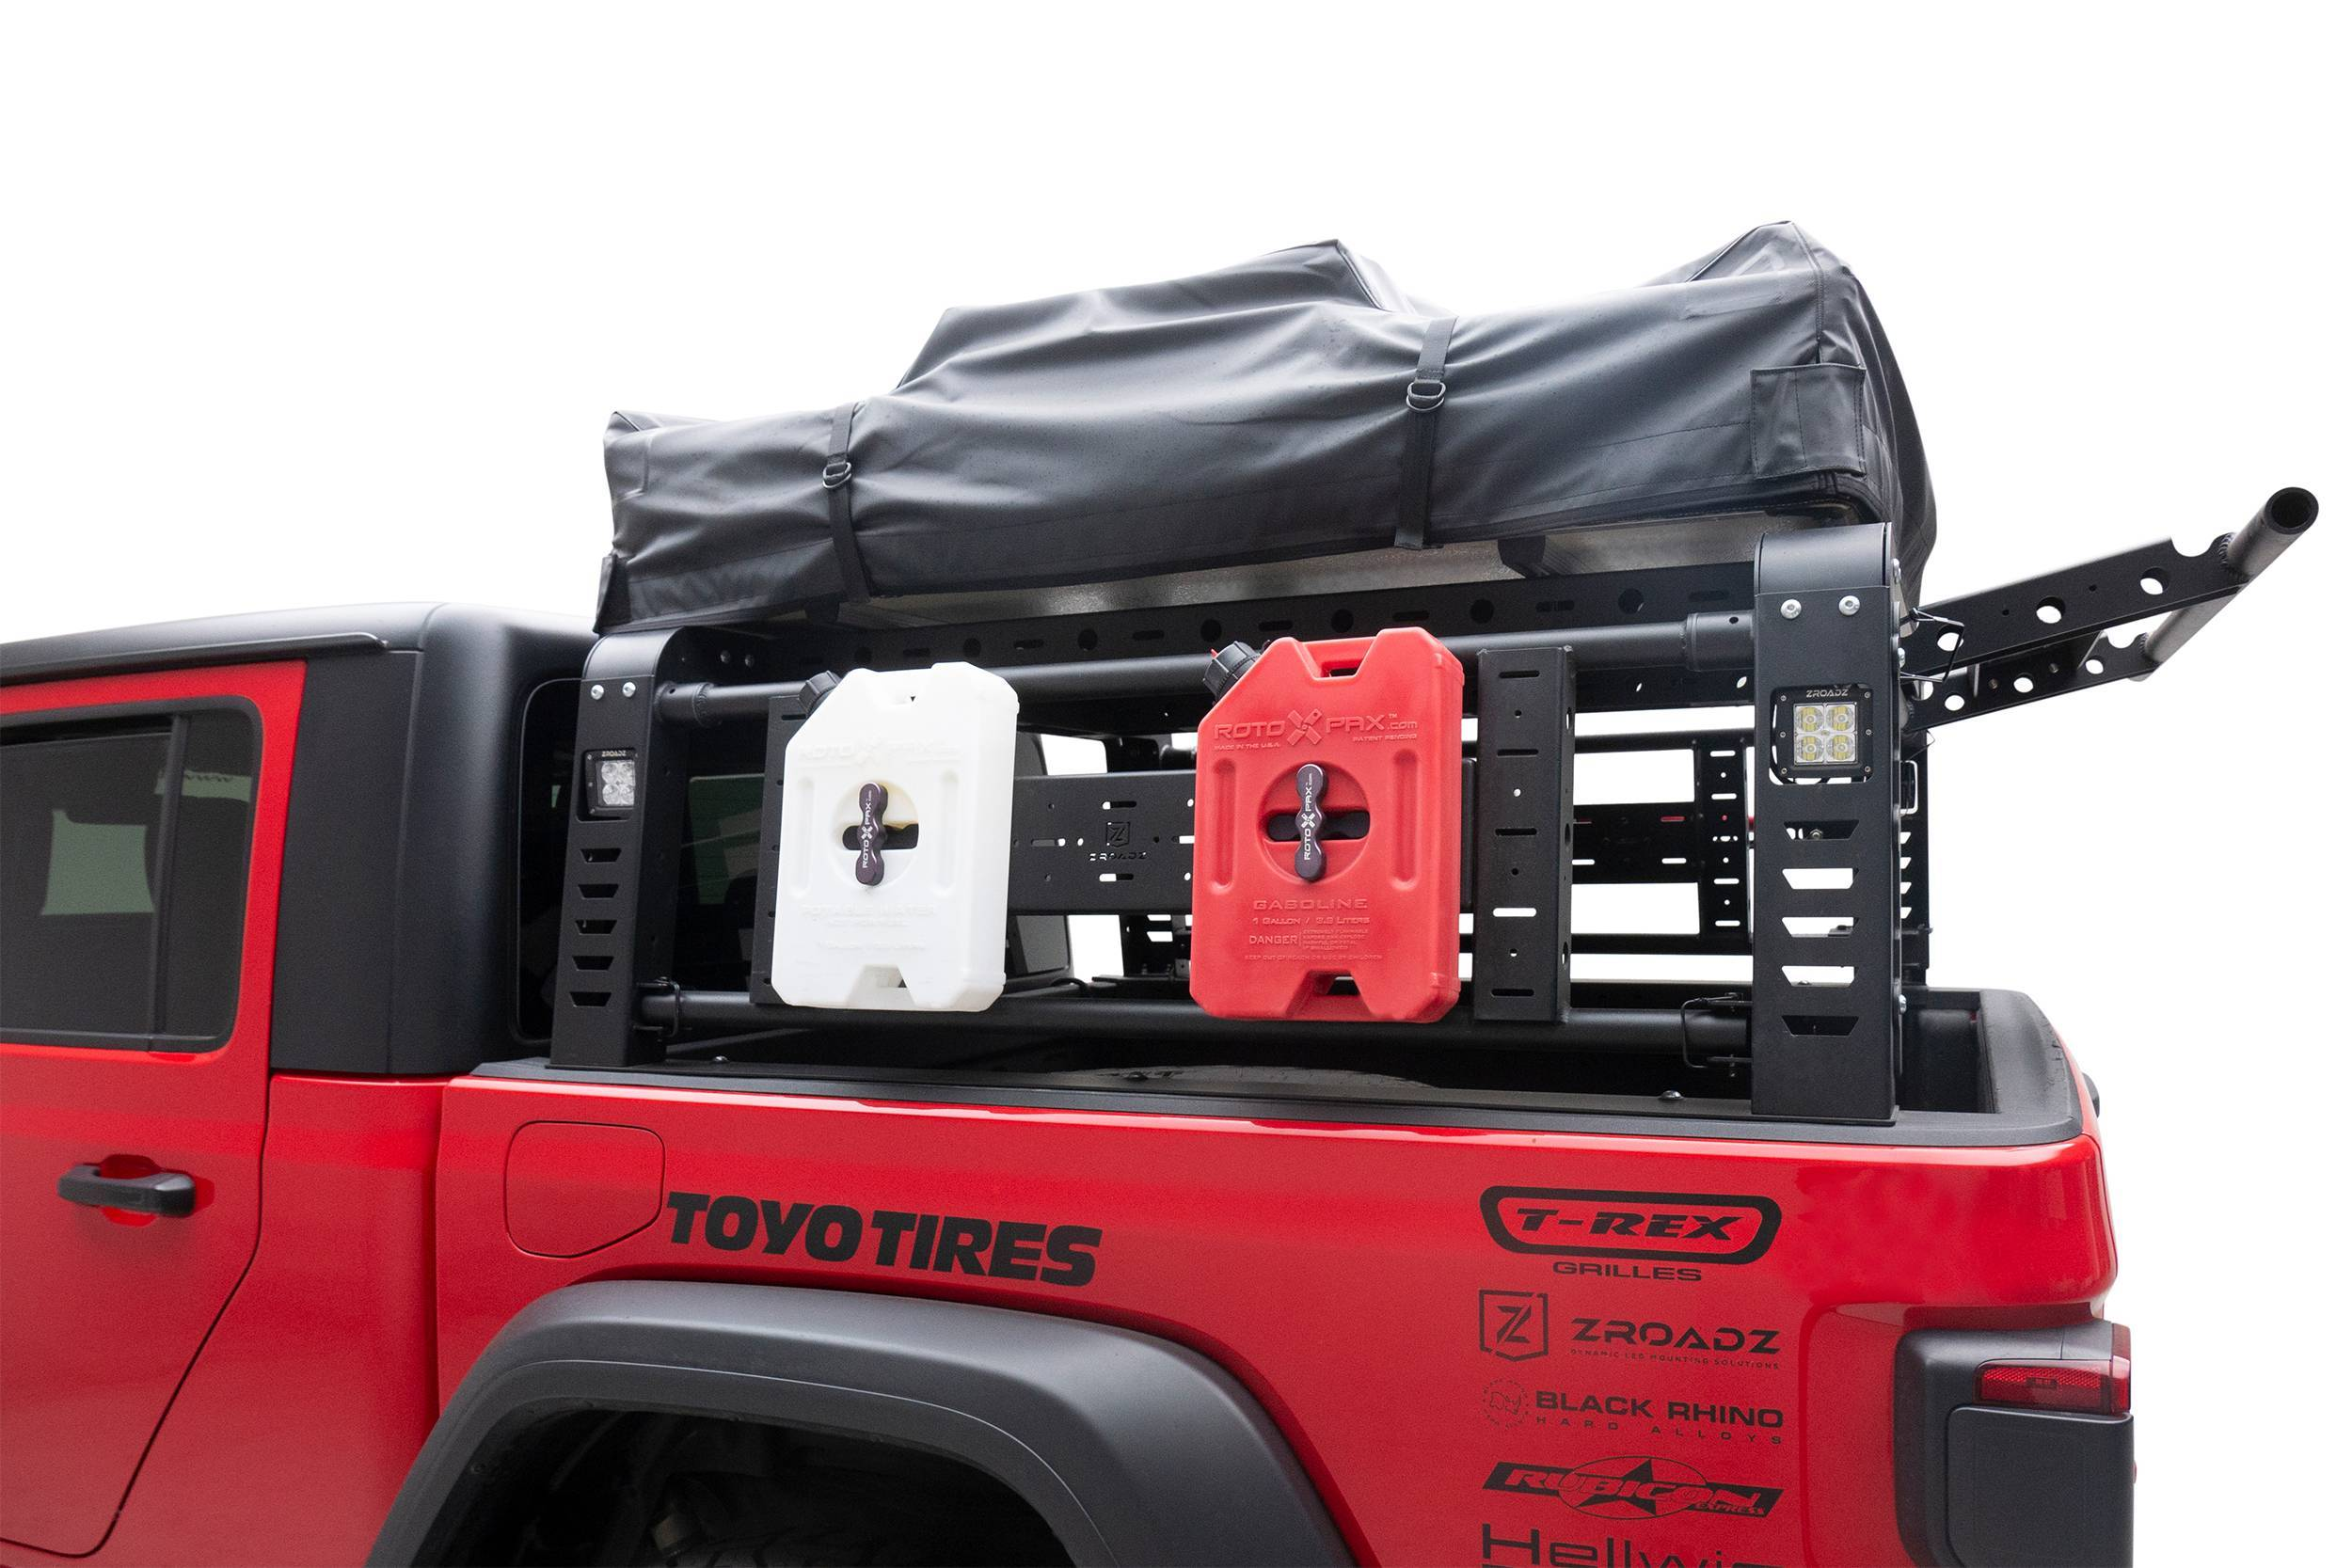 2019-2021 Jeep Gladiator Access Overland Rack With Three Lifting Side Gates, For use on Factory Trail Rail Cargo Systems - PN #Z834211